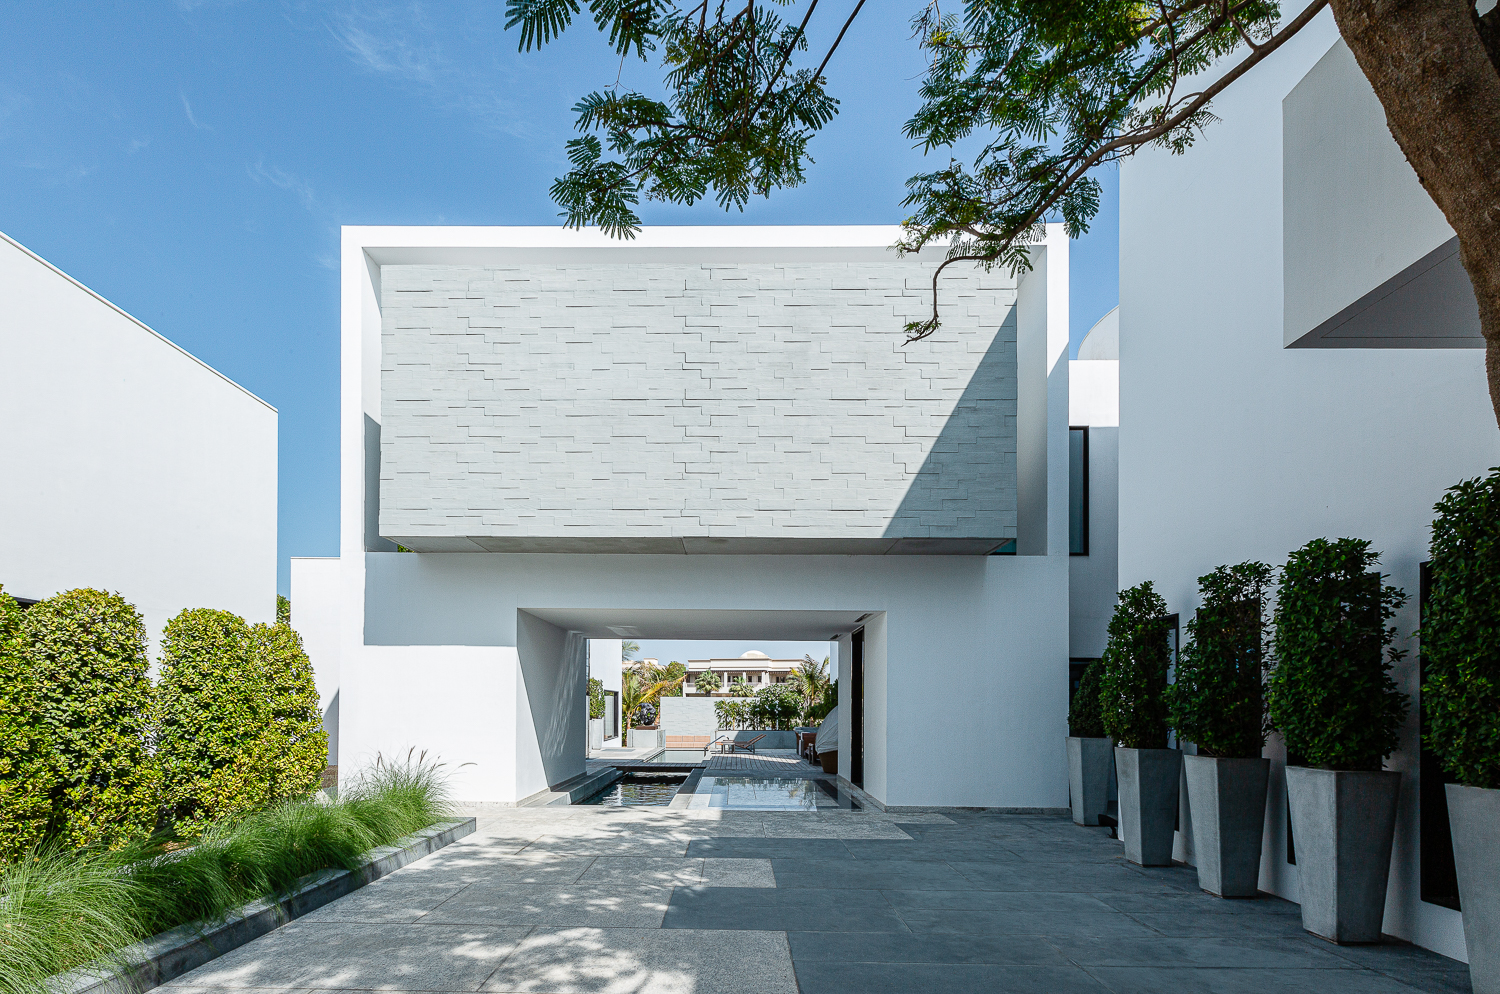 Modern architecture photographers, private villa courtyard in Dubai by Photographer Ella Bessette